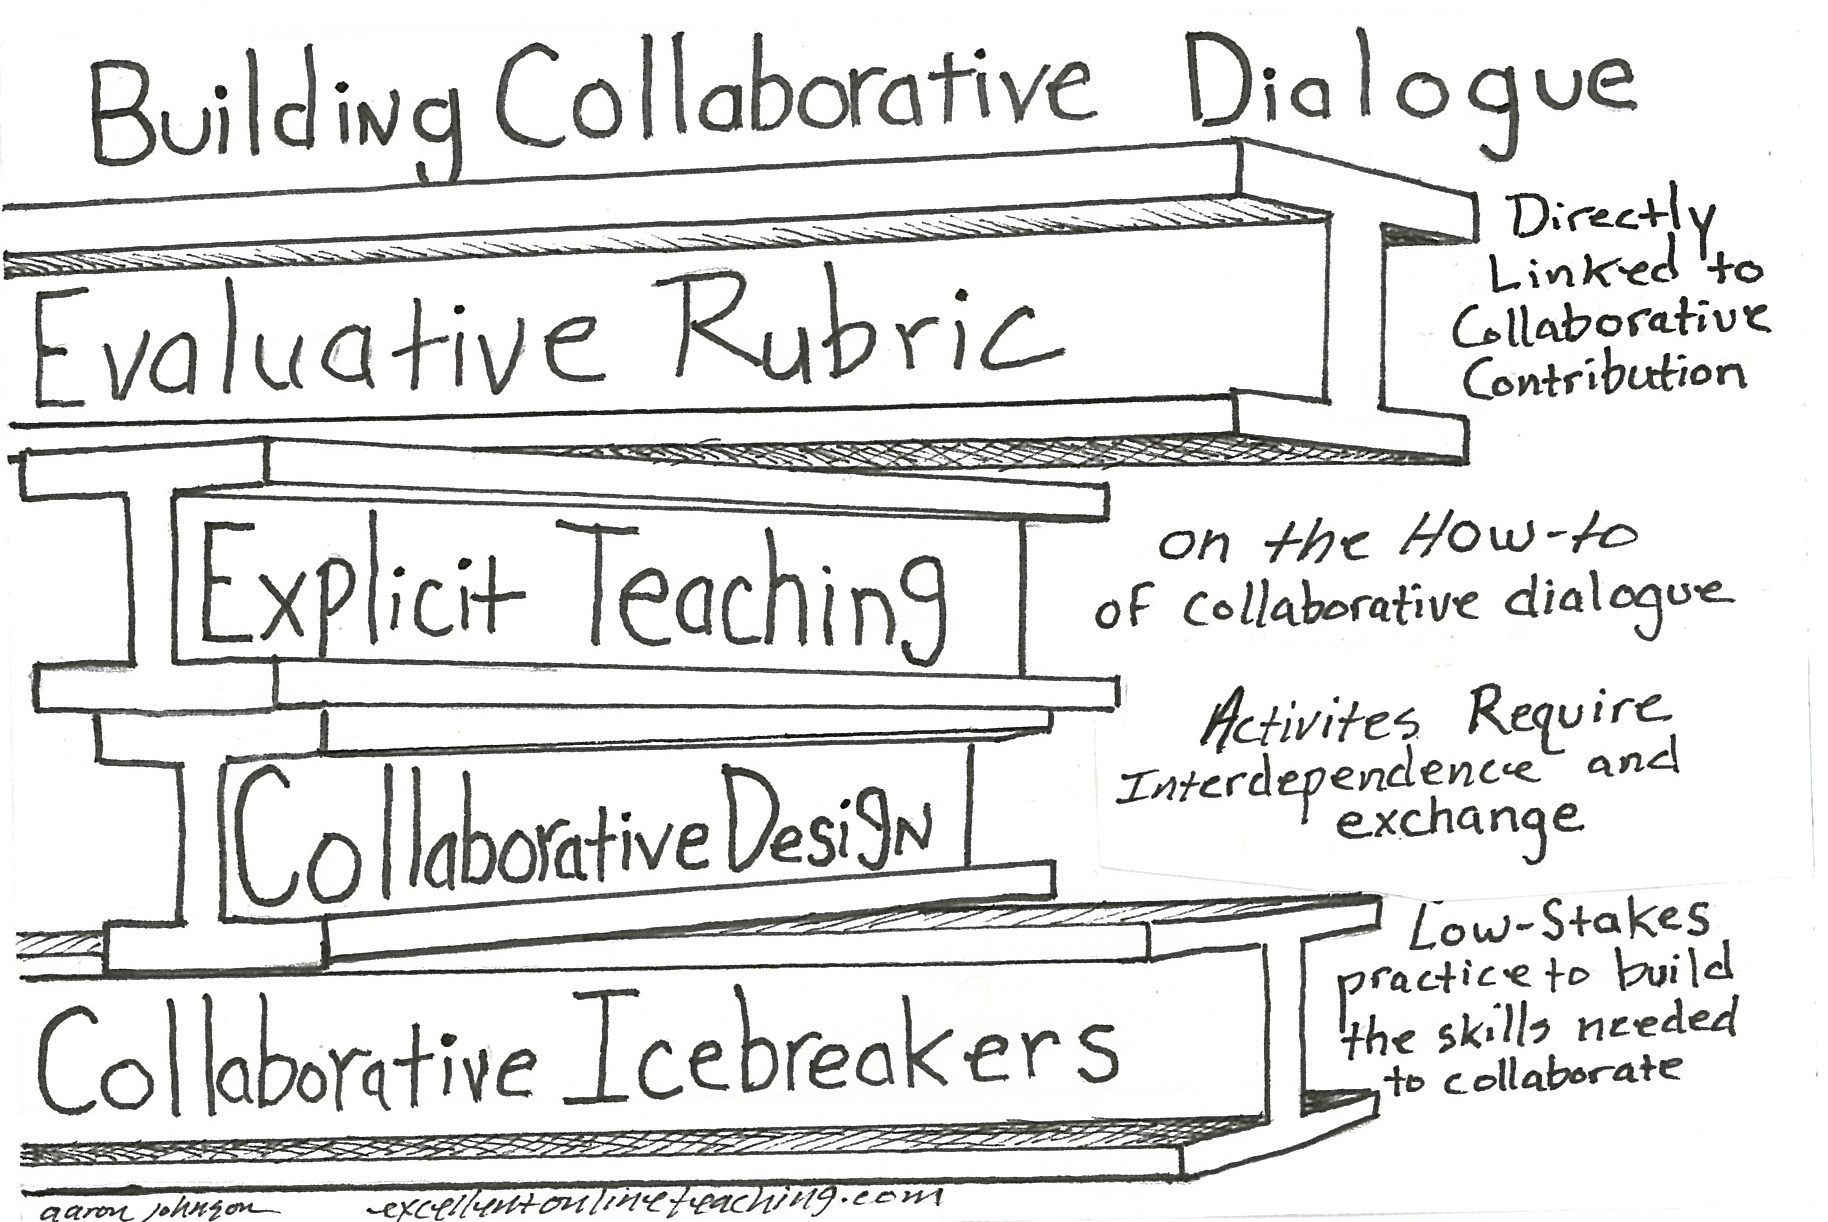 Collaborative Teaching Building Unm ~ Building collaborative dialogue in online courses